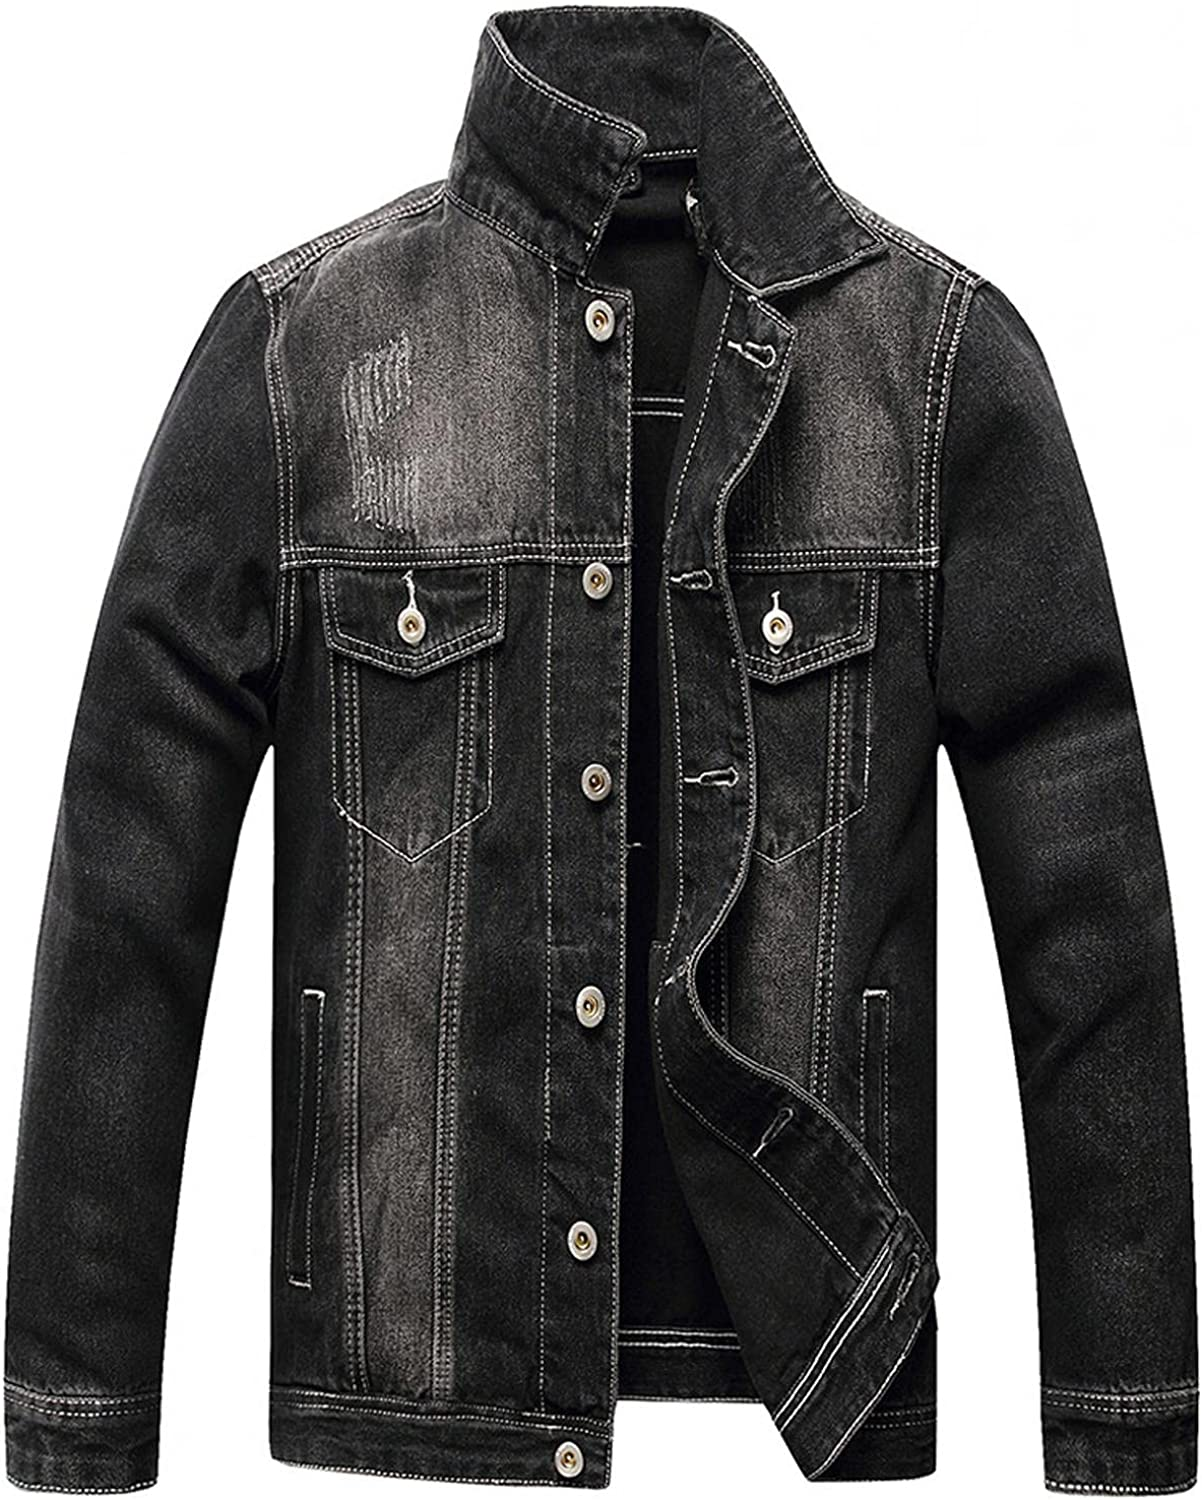 Jacekt for Men Classic Ripped Slim Fit Holes Denim Jacket Distressed Button Up Long Sleeve Trucker Coat with Pocket